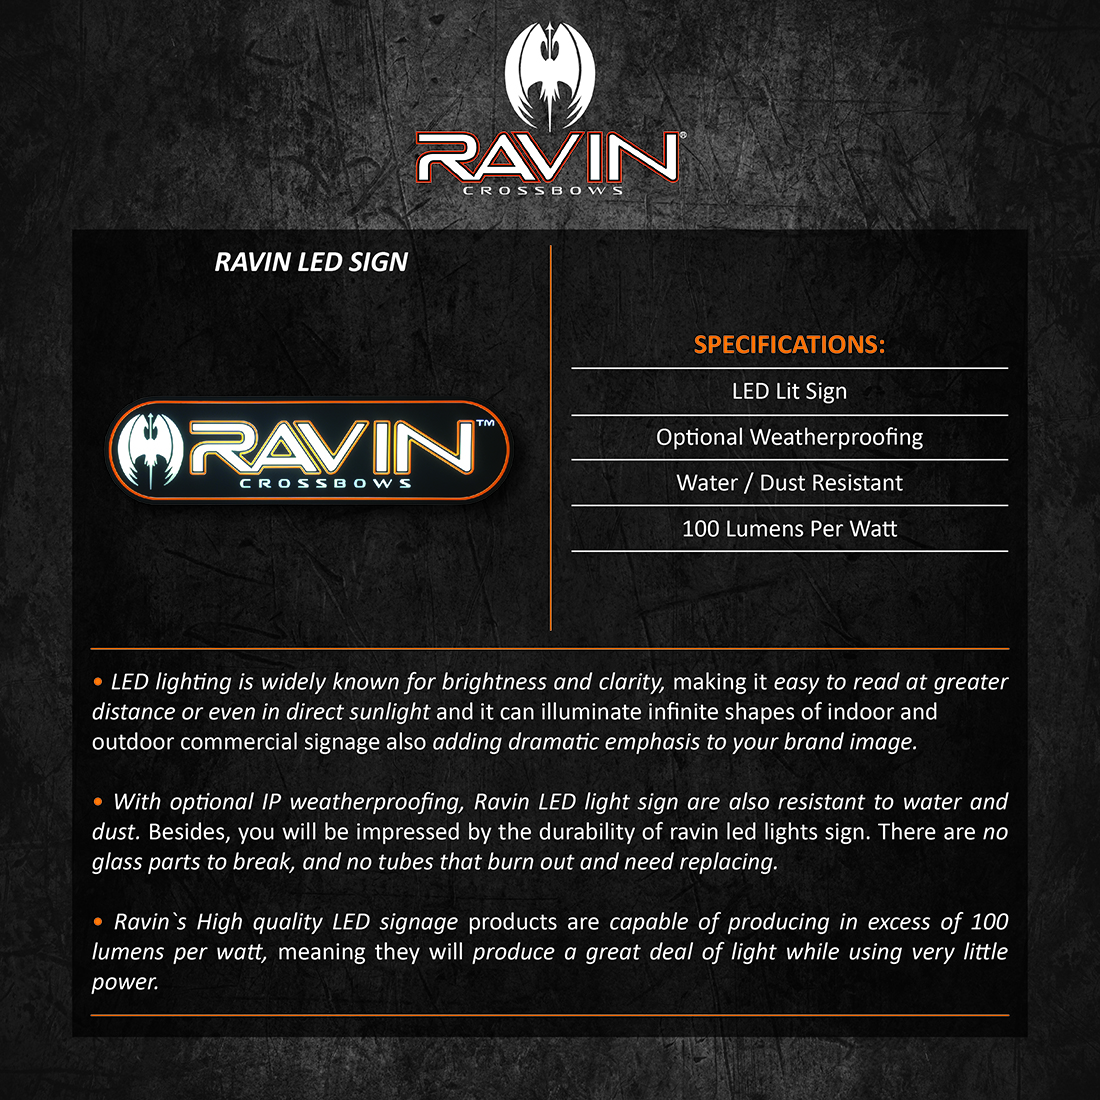 Ravin_LED_Sign_Product_Description